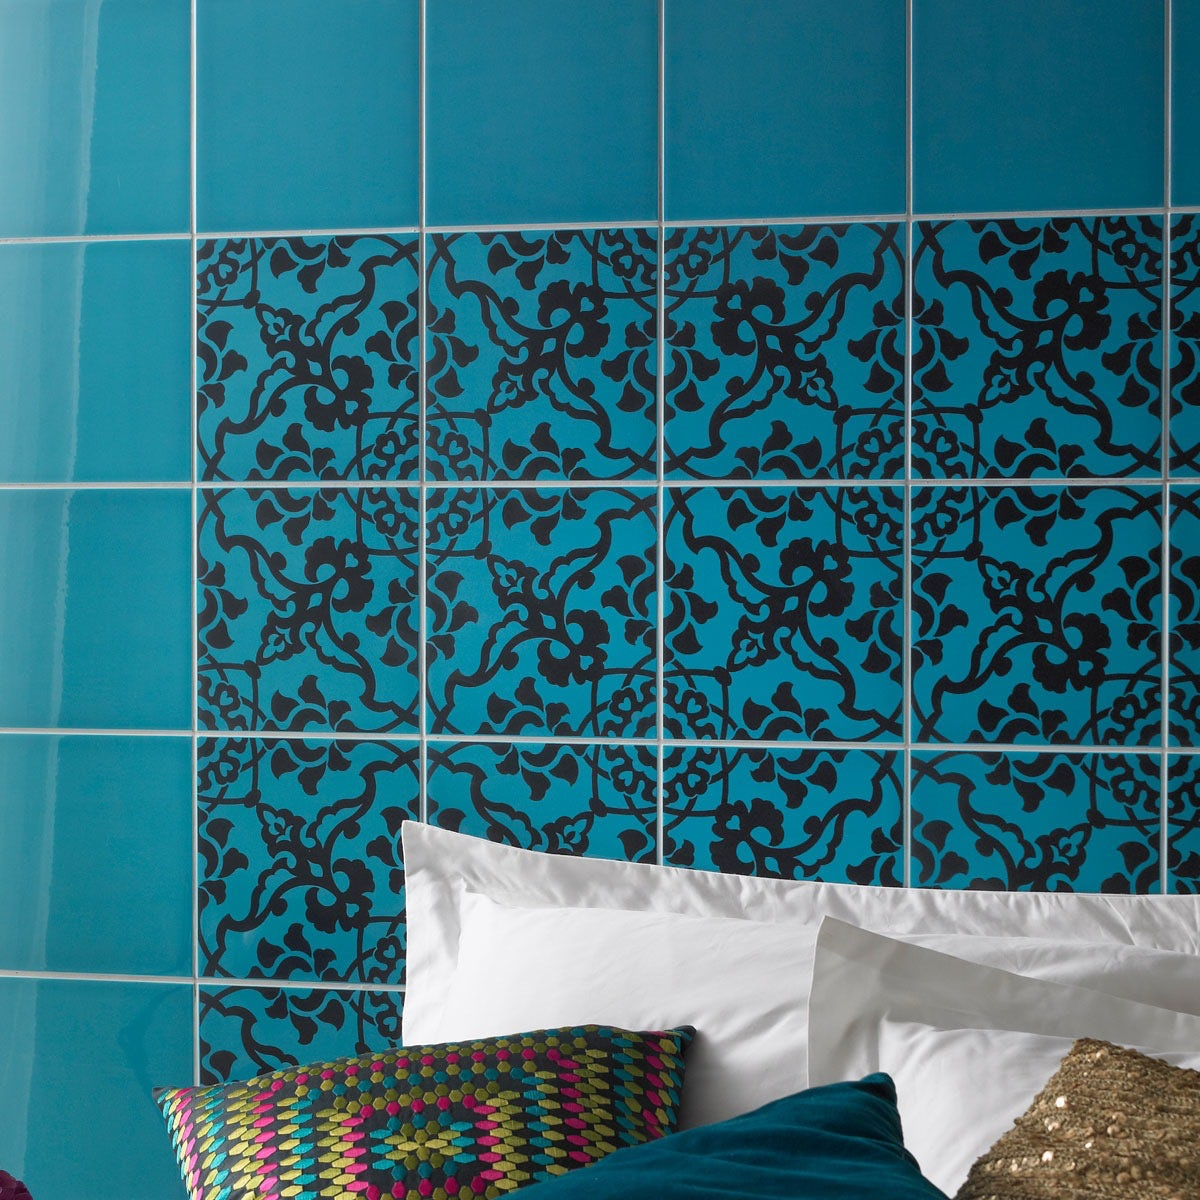 V&A turquoise gloss tiles 198mm x 198mm